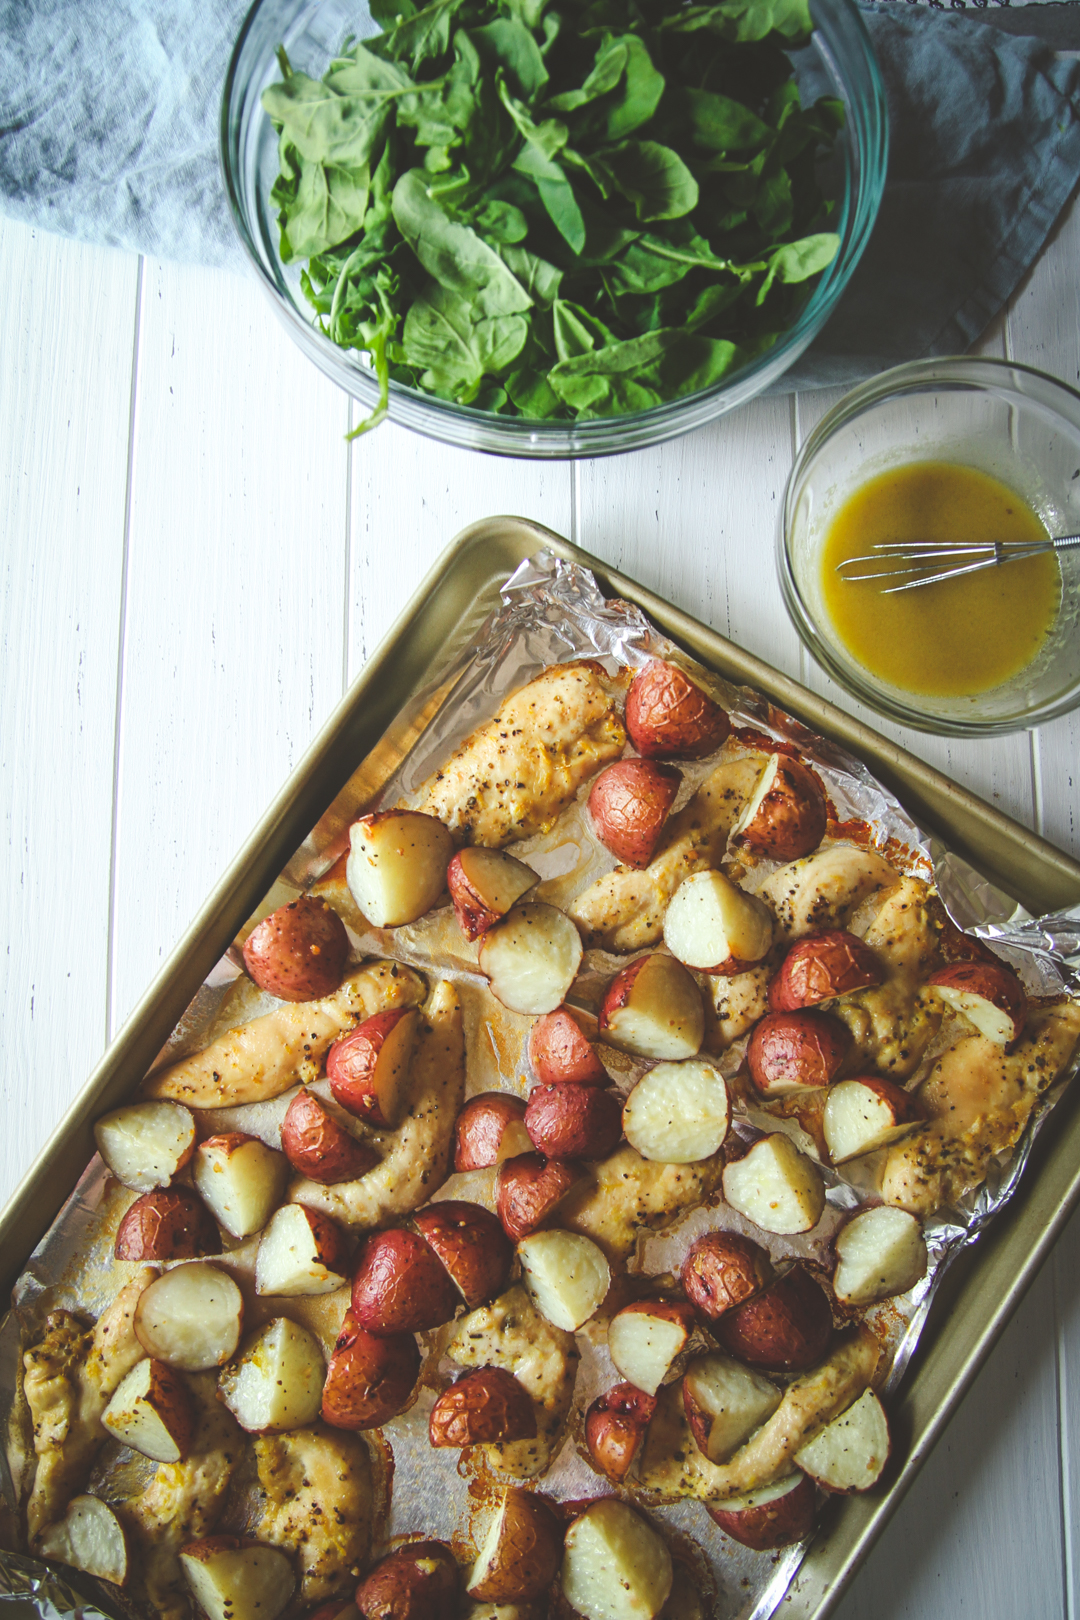 Arugula salad with chicken and potatoes, sheet pan chicken potato arugula recipe, easy one pot chicken dinner recipe, simple and filling chicken and arugula salad recipe, chicken potato arugula salad with a lemon dressing